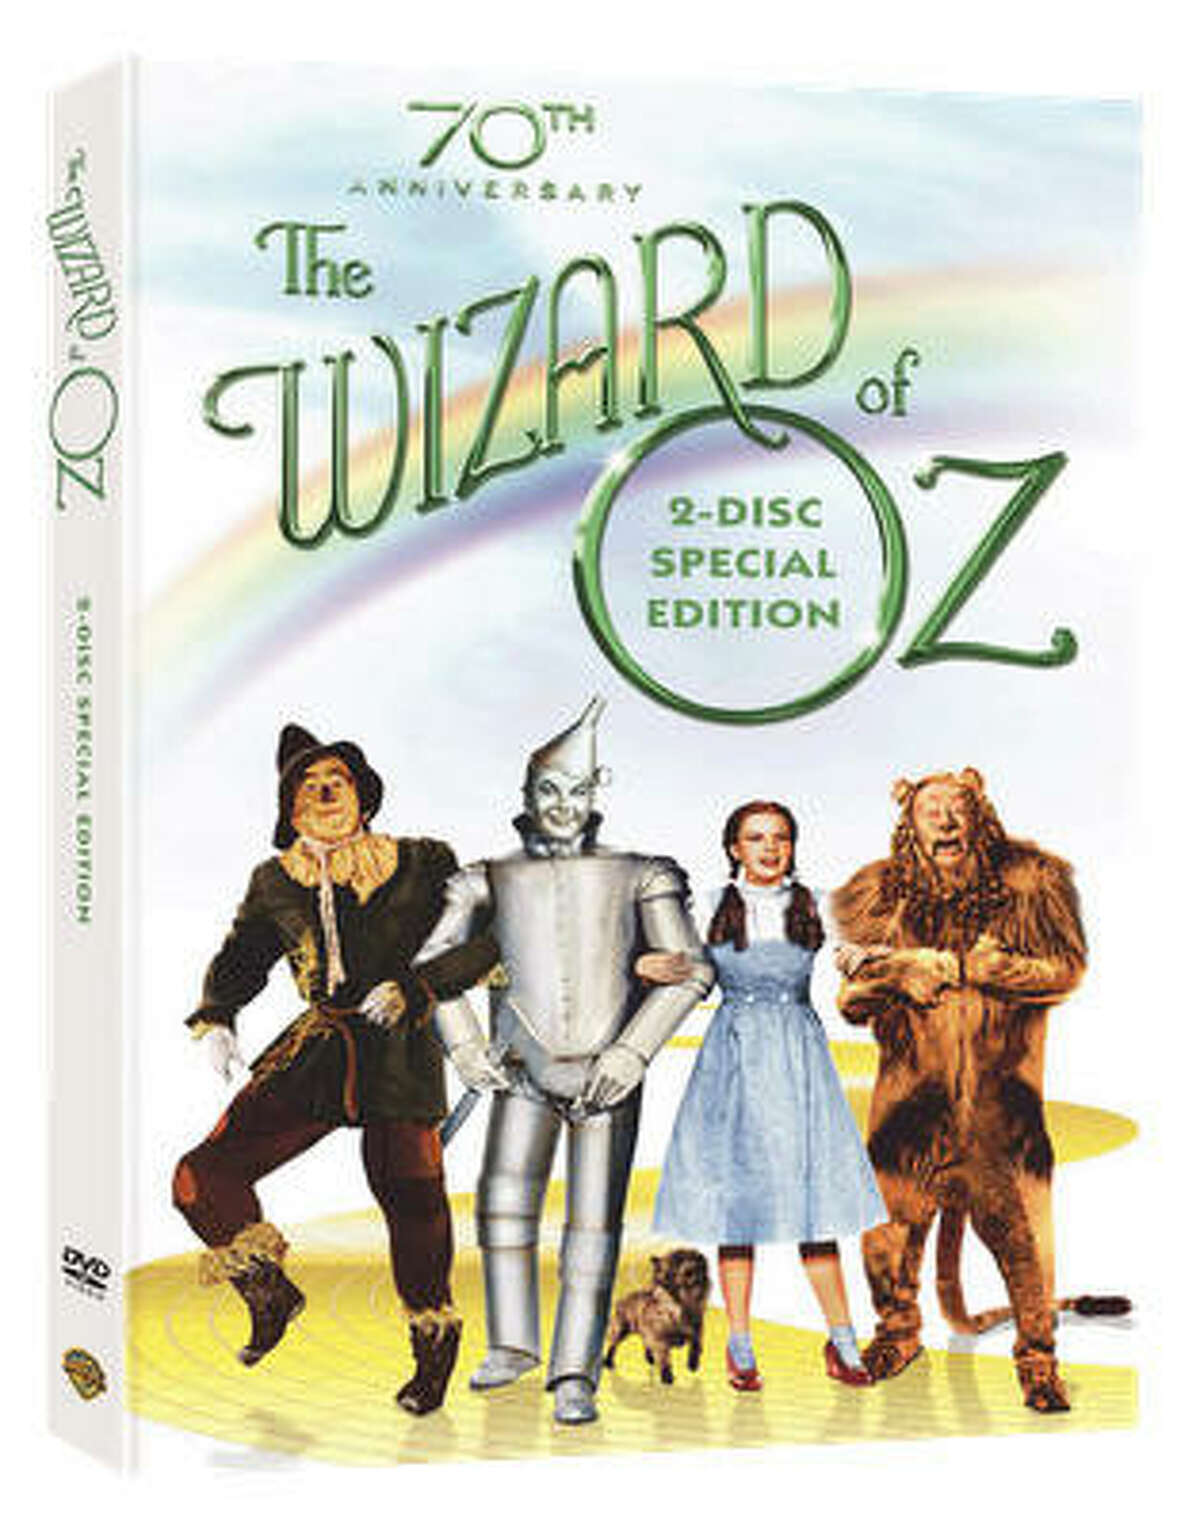 """The Wizard of Oz (70th Anniversary Two-Disc Special Edition) will cost you $24.98. The Wizard of Oz (70th Anniversary Ultimate Collector's Edition) will run you $69.99 and includes: """"16 Hours of Enhanced Content, Four of Which Are Brand New, Including New Documentaries, Featurettes, Digital Copy on Disc and Rare and highly collectible memorabilia. Premiums include: 52-pg. Production History Book, Behind the Curtain; Exclusive 70th Anniversary Watch with GENUINE CRYSTALS; Reproduction of the original film budget; 1939 Campaign Book Exclusive to Amazon are a set of 4 collectible poster cards featuring the characters of Wizard of Oz."""""""